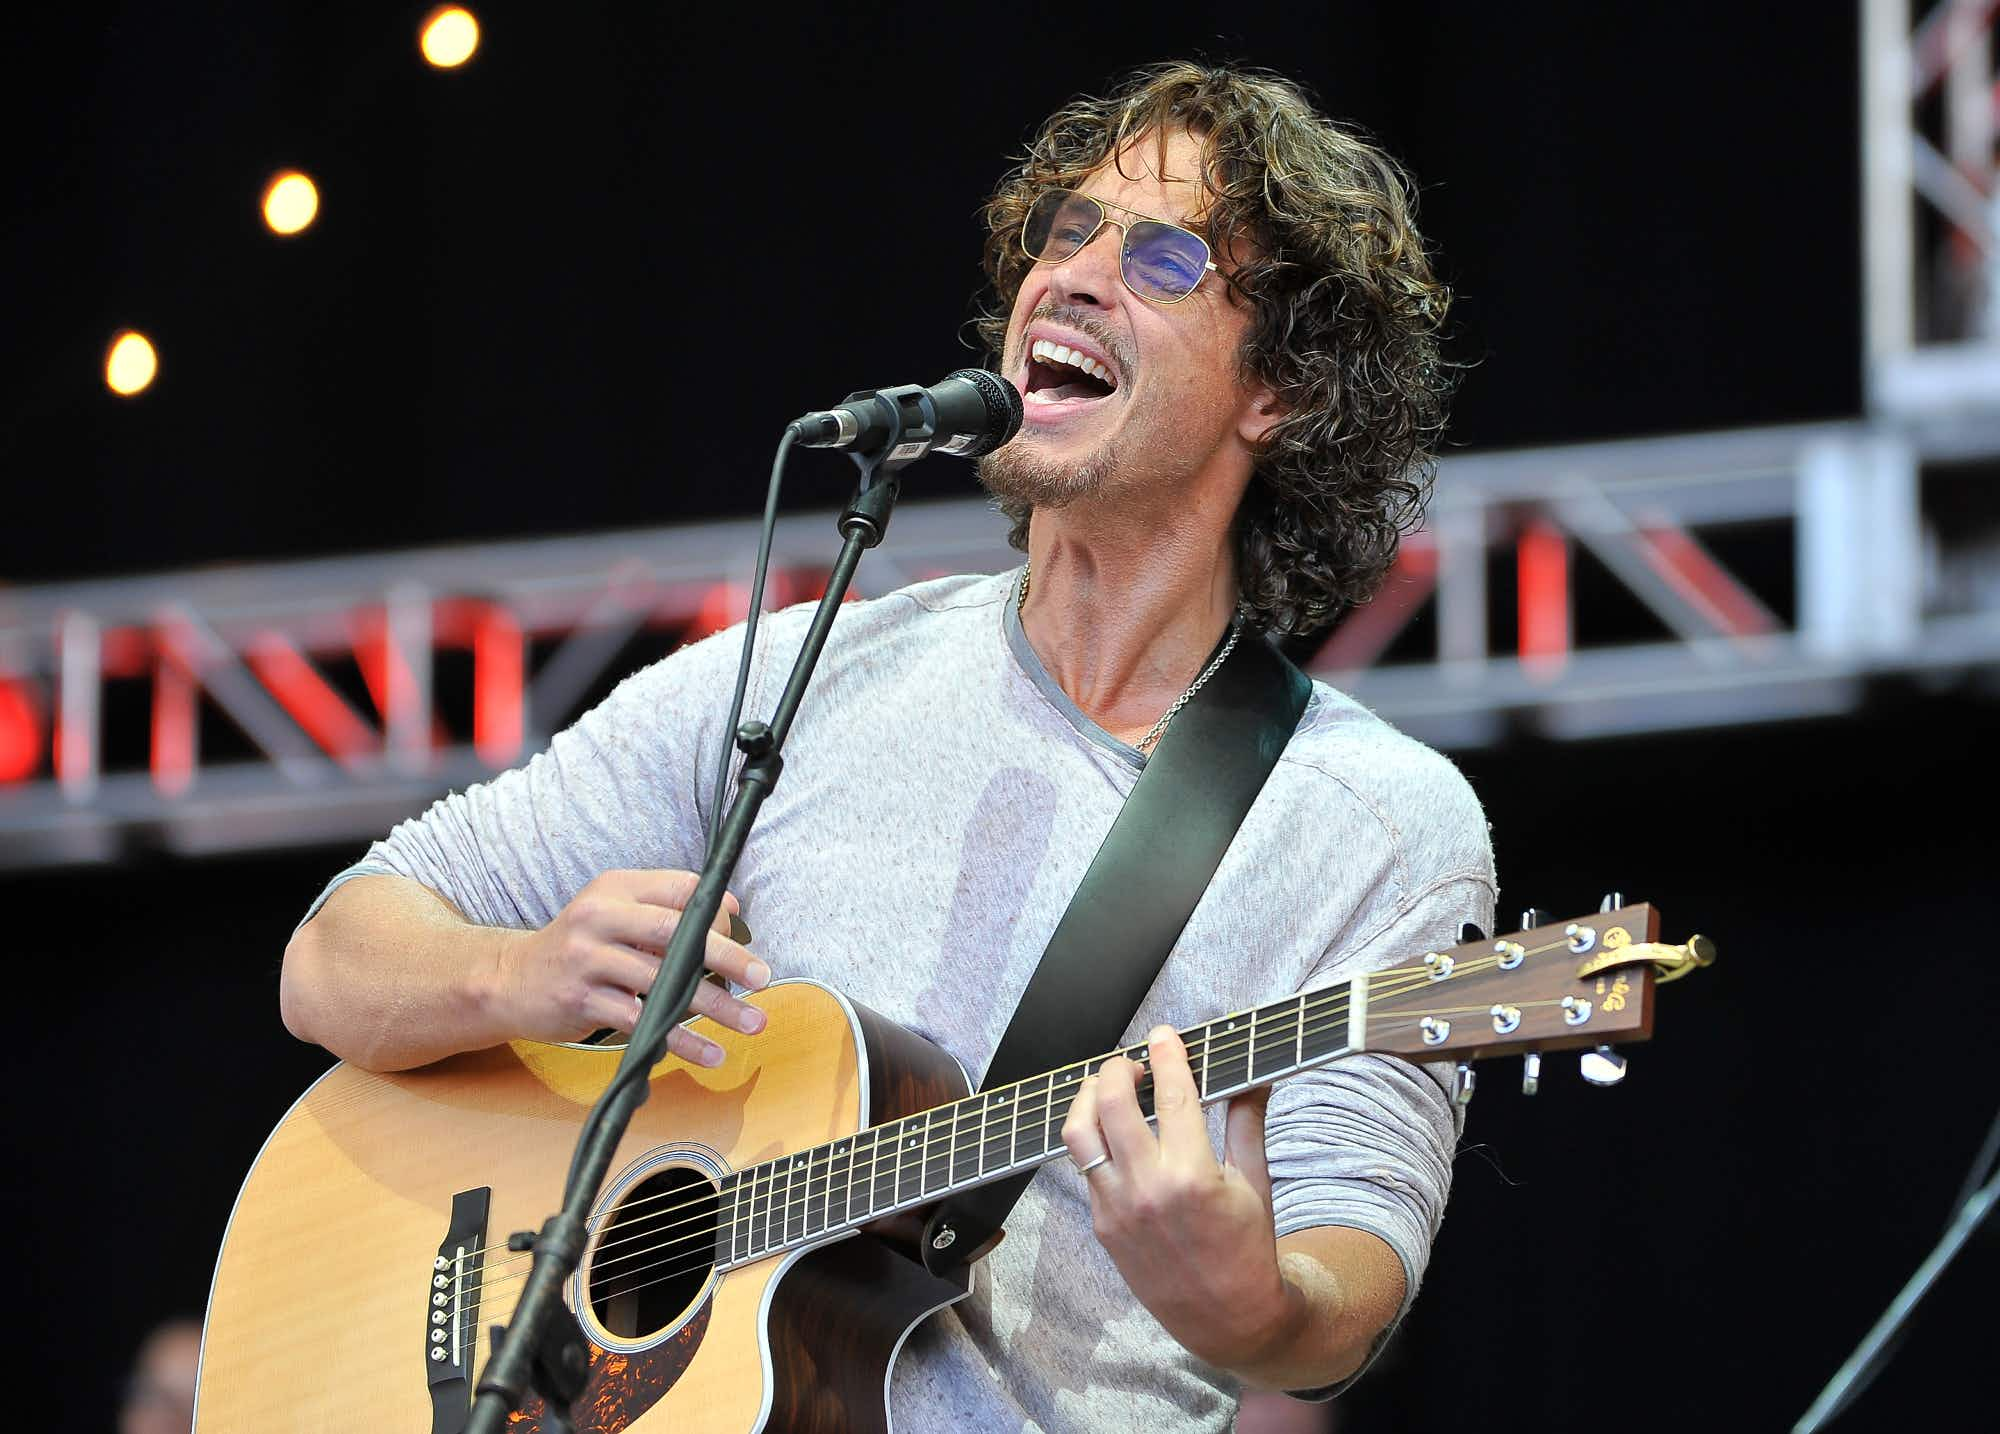 A memorial statue dedicated to musician Chris Cornell is set to be erected in his home town of Seattle